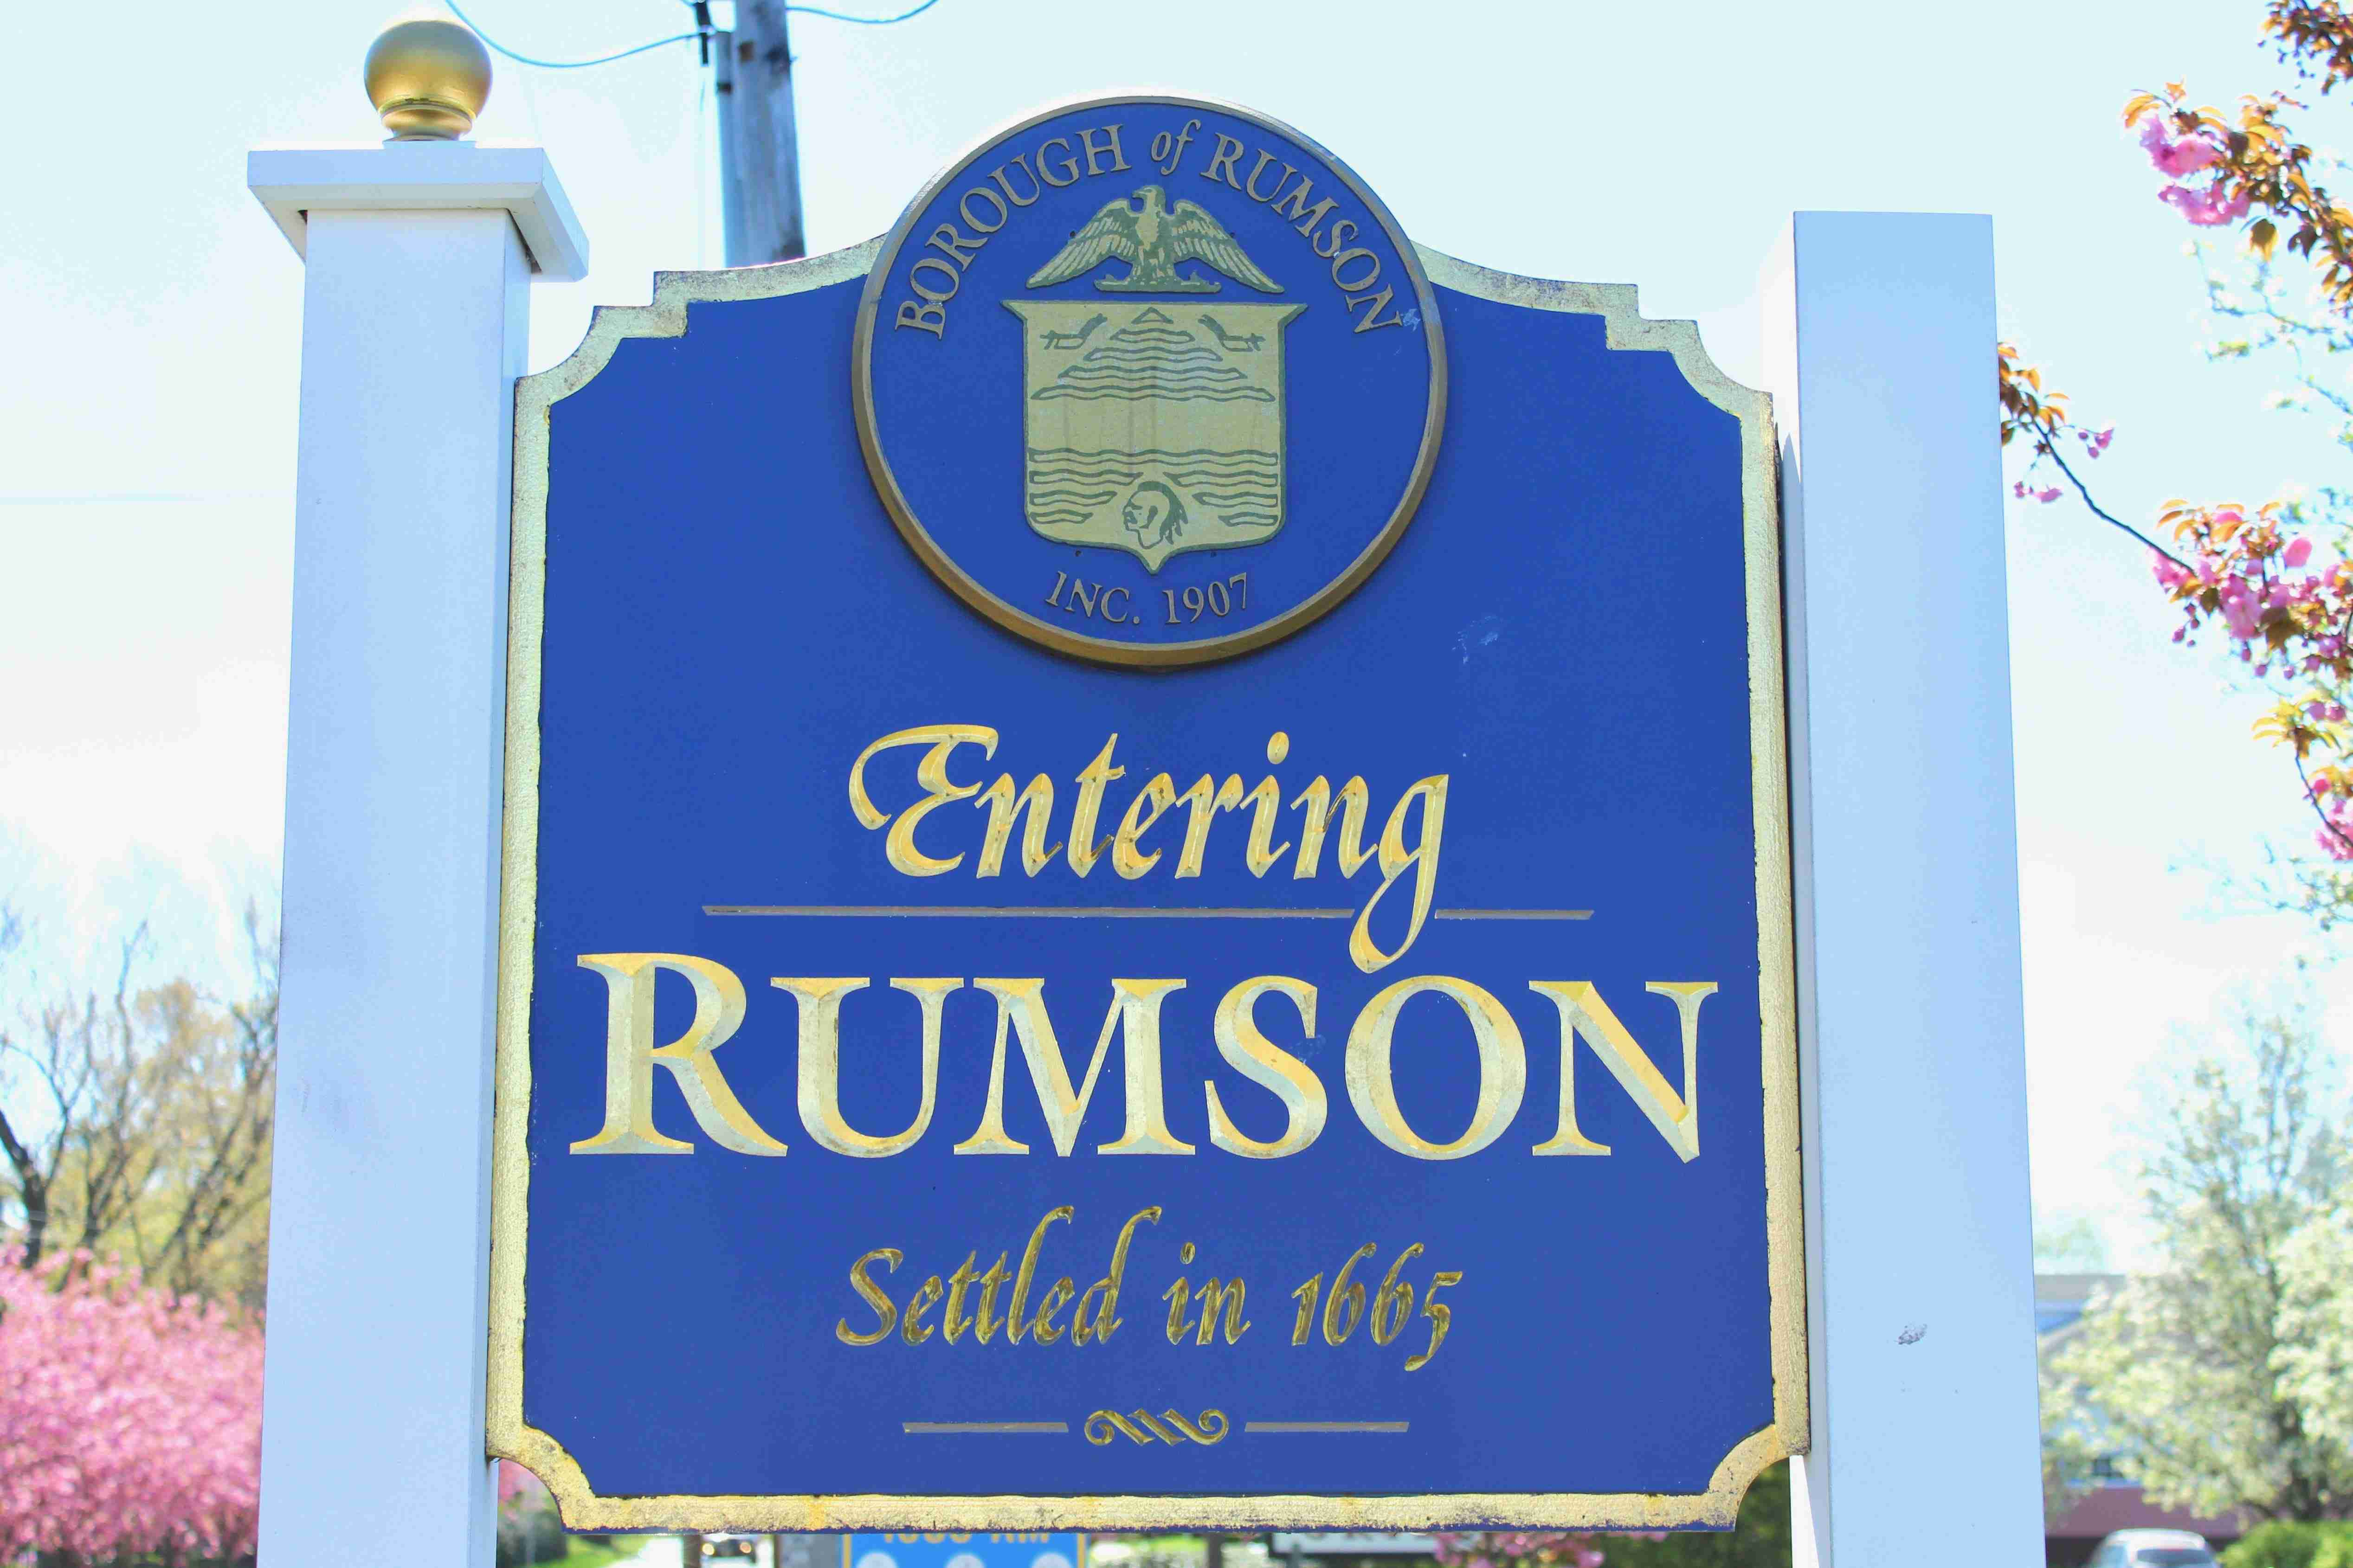 rumson new jersey 1665 sign town ryan edelson